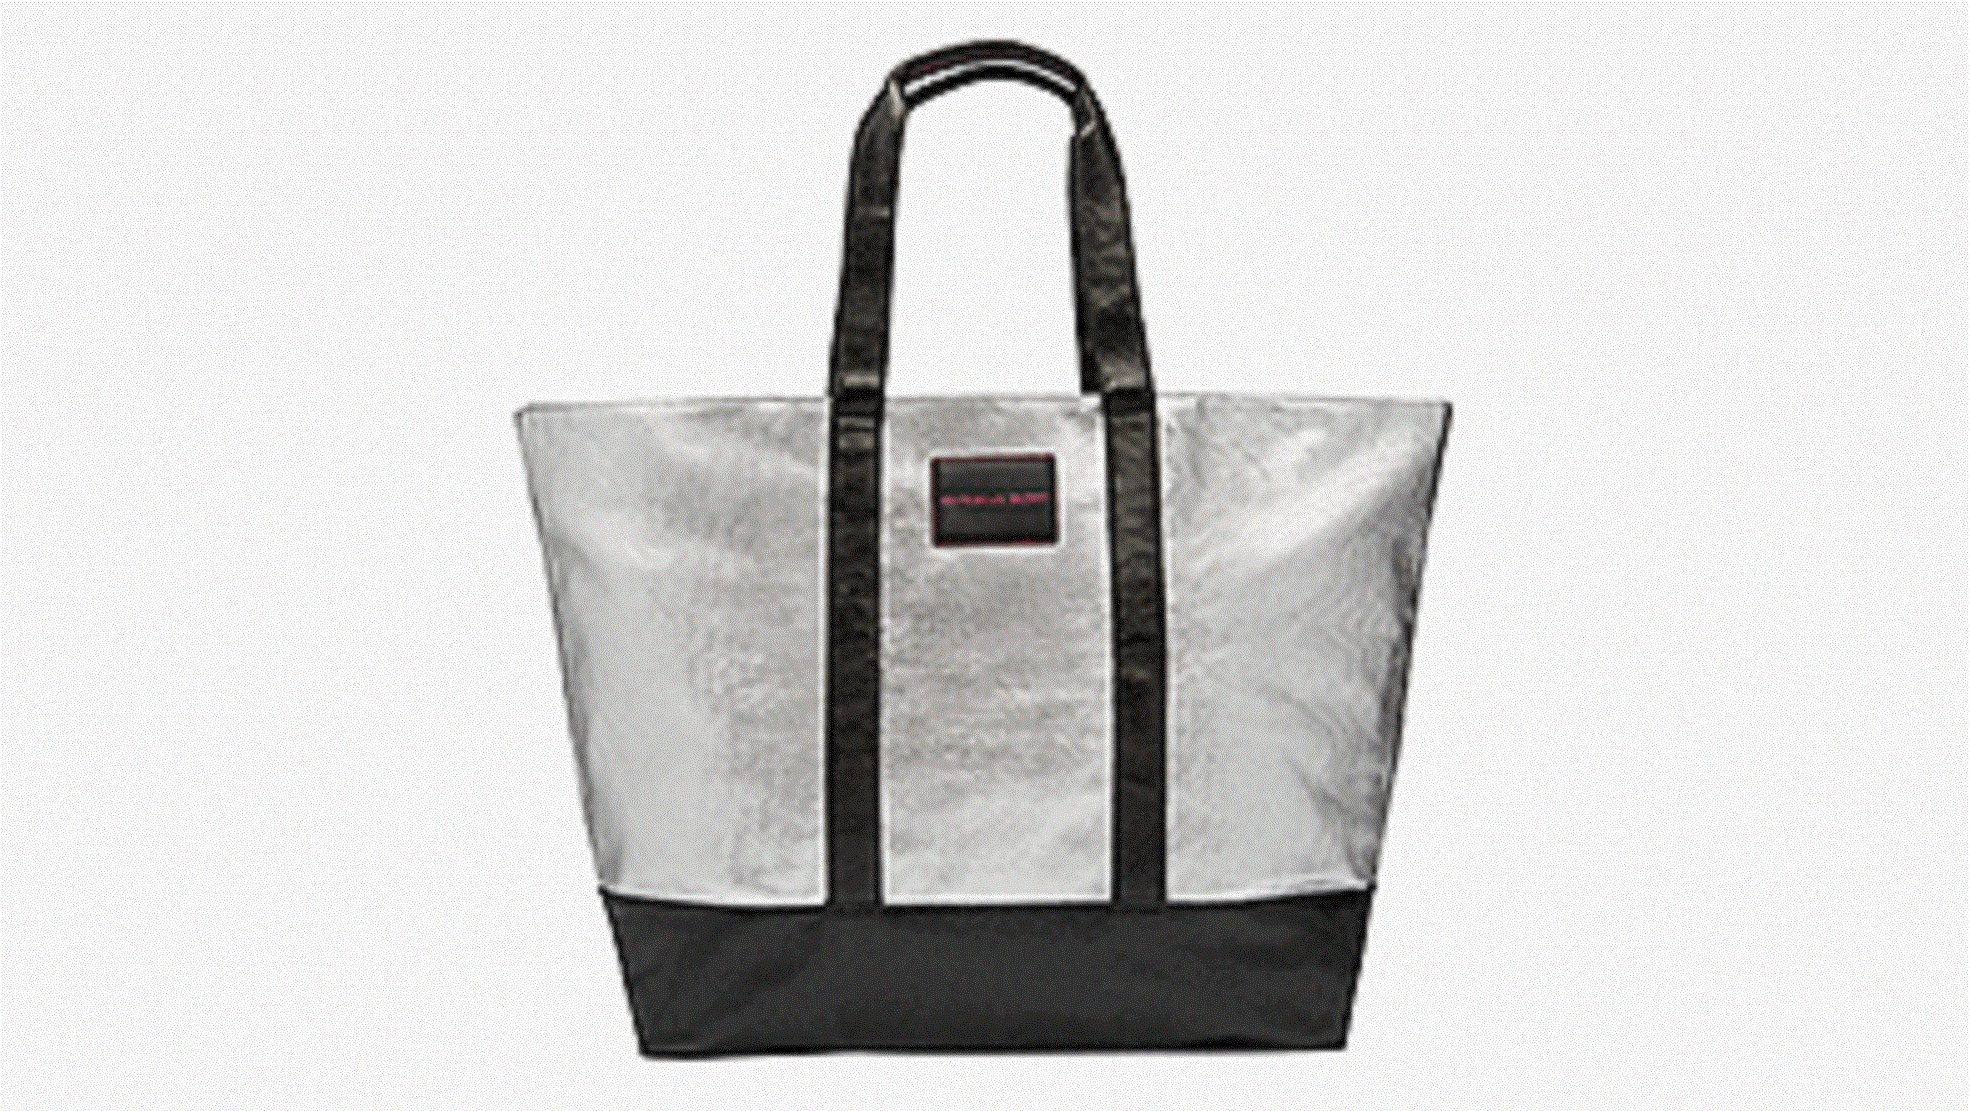 Victoria's Secret Limed Edition Metallic Silver Weekender Tote Bag & Crossbody Duo by Victoria's Secret (Image #3)